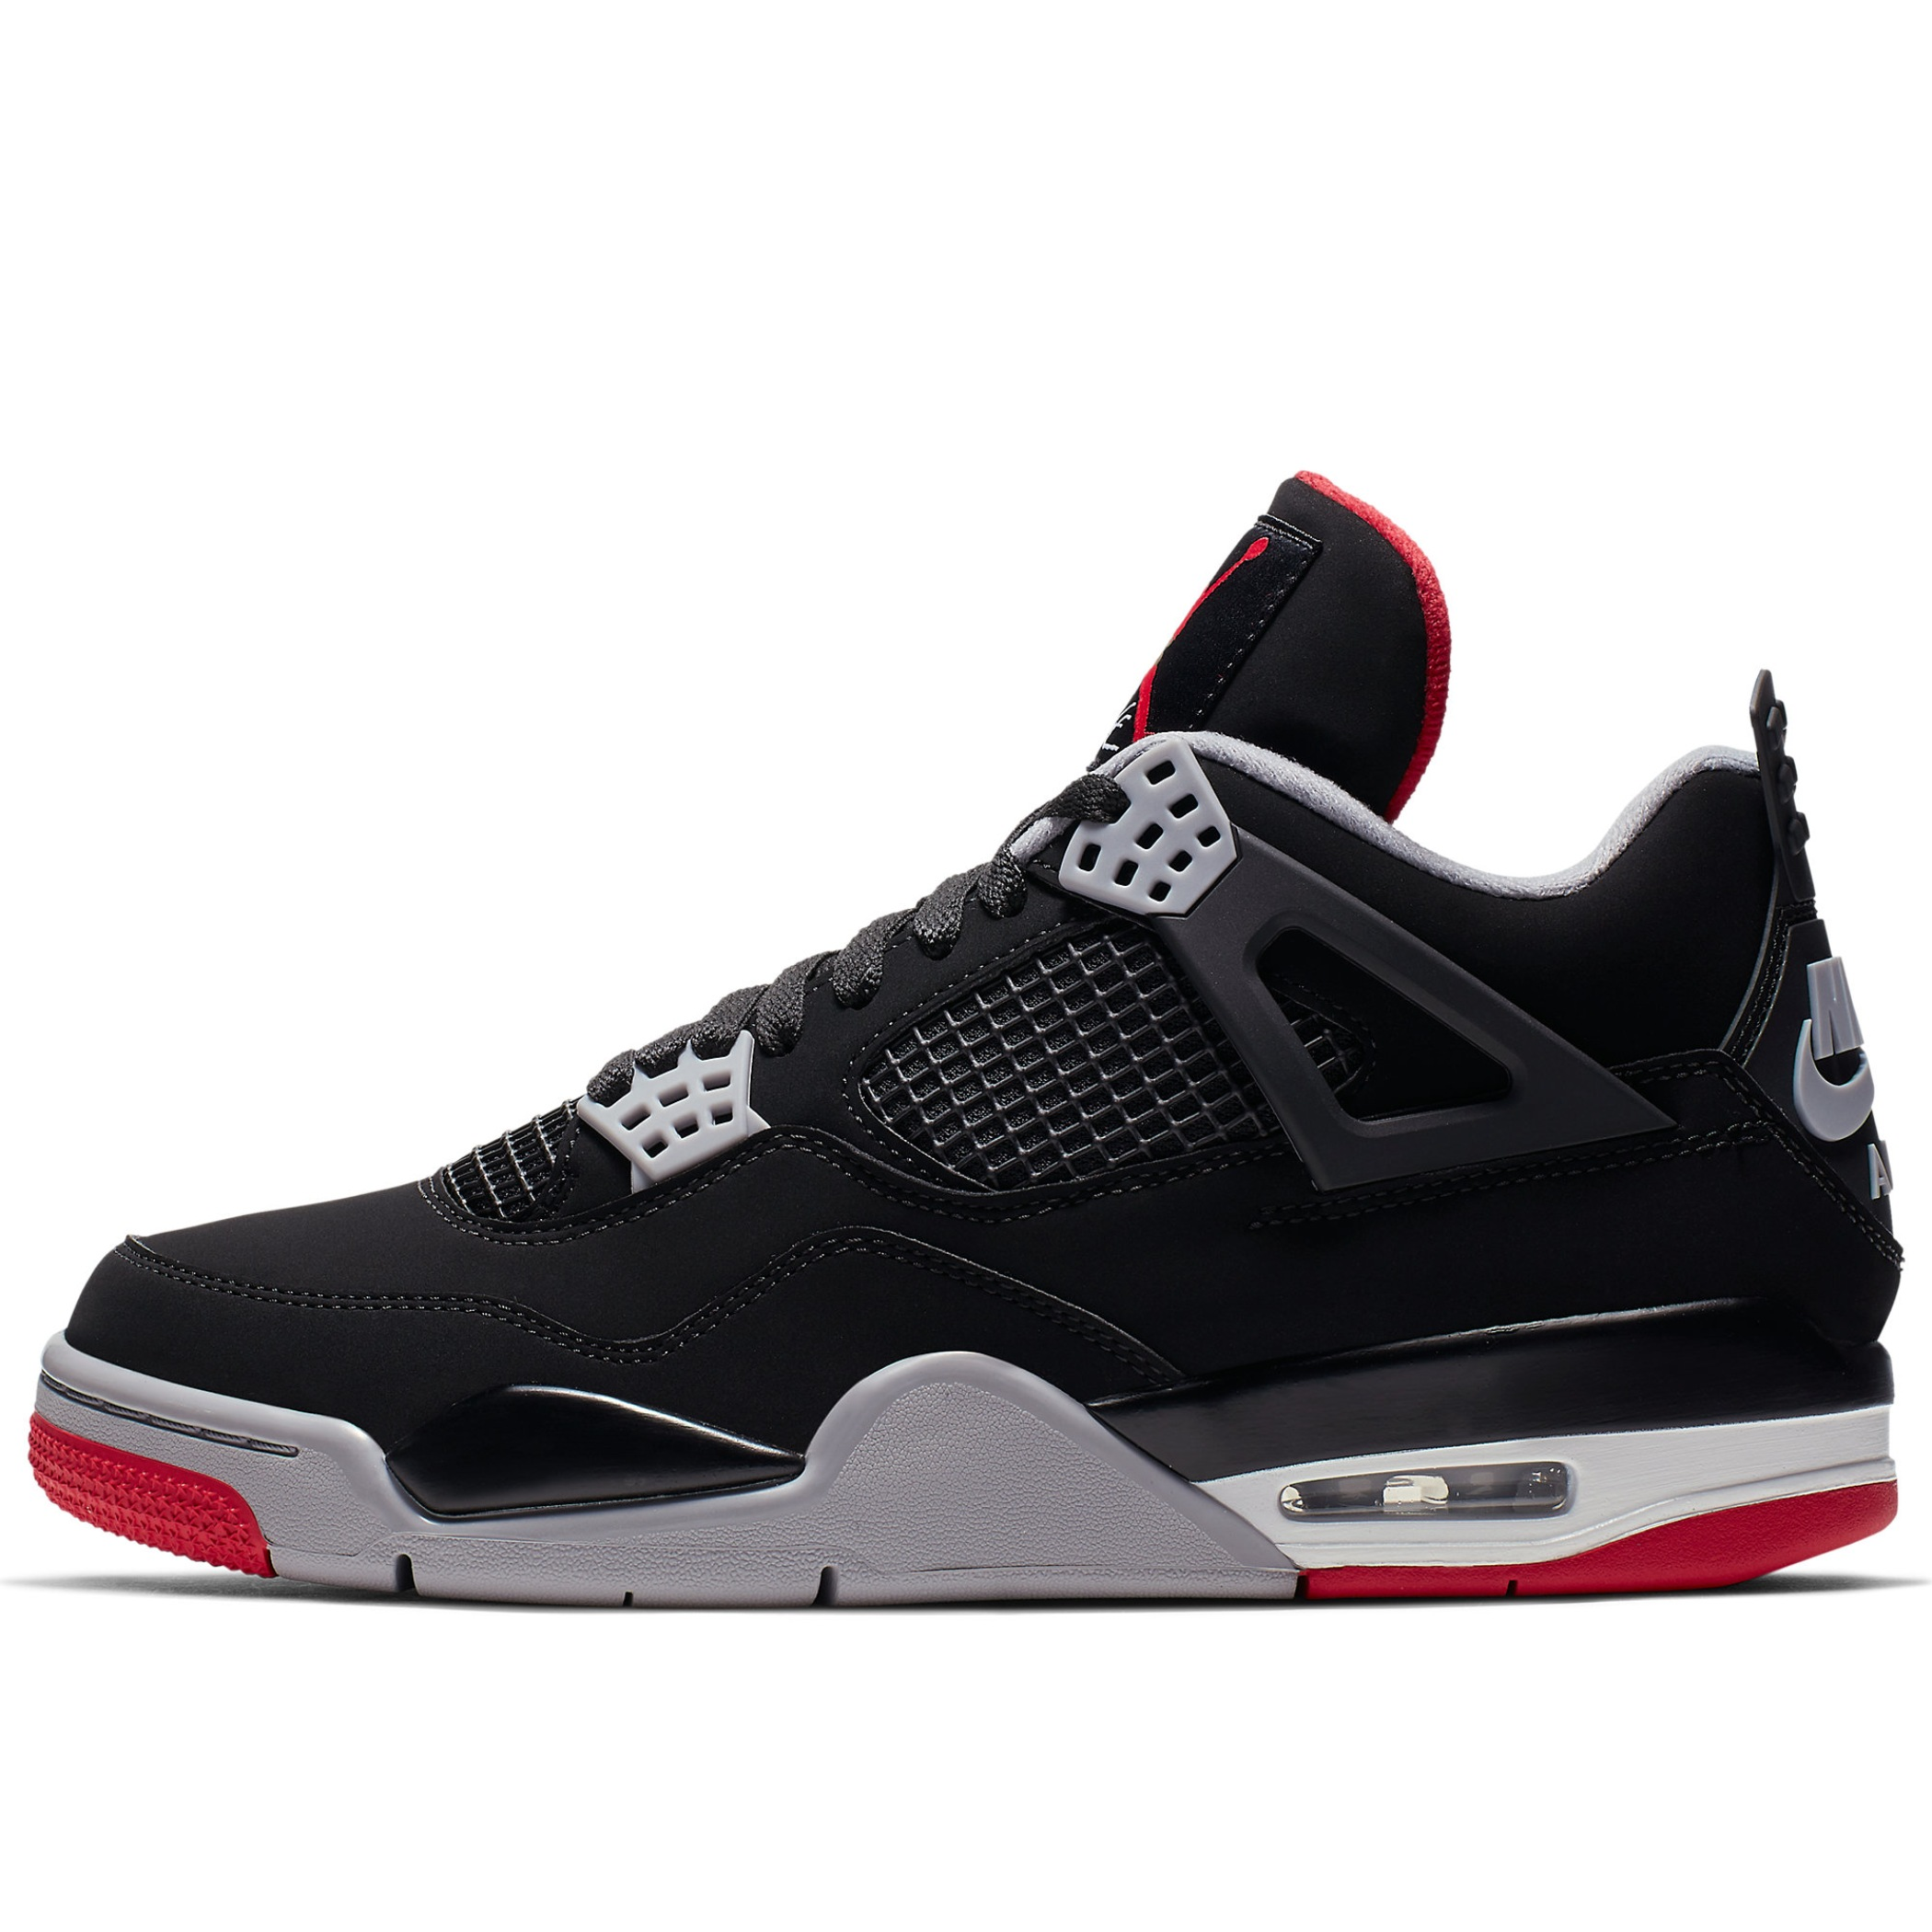 3b6a62cd Мужские кроссовки Jordan Air Jordan 4 Retro Bred Black/Fire Red-Cement Grey-